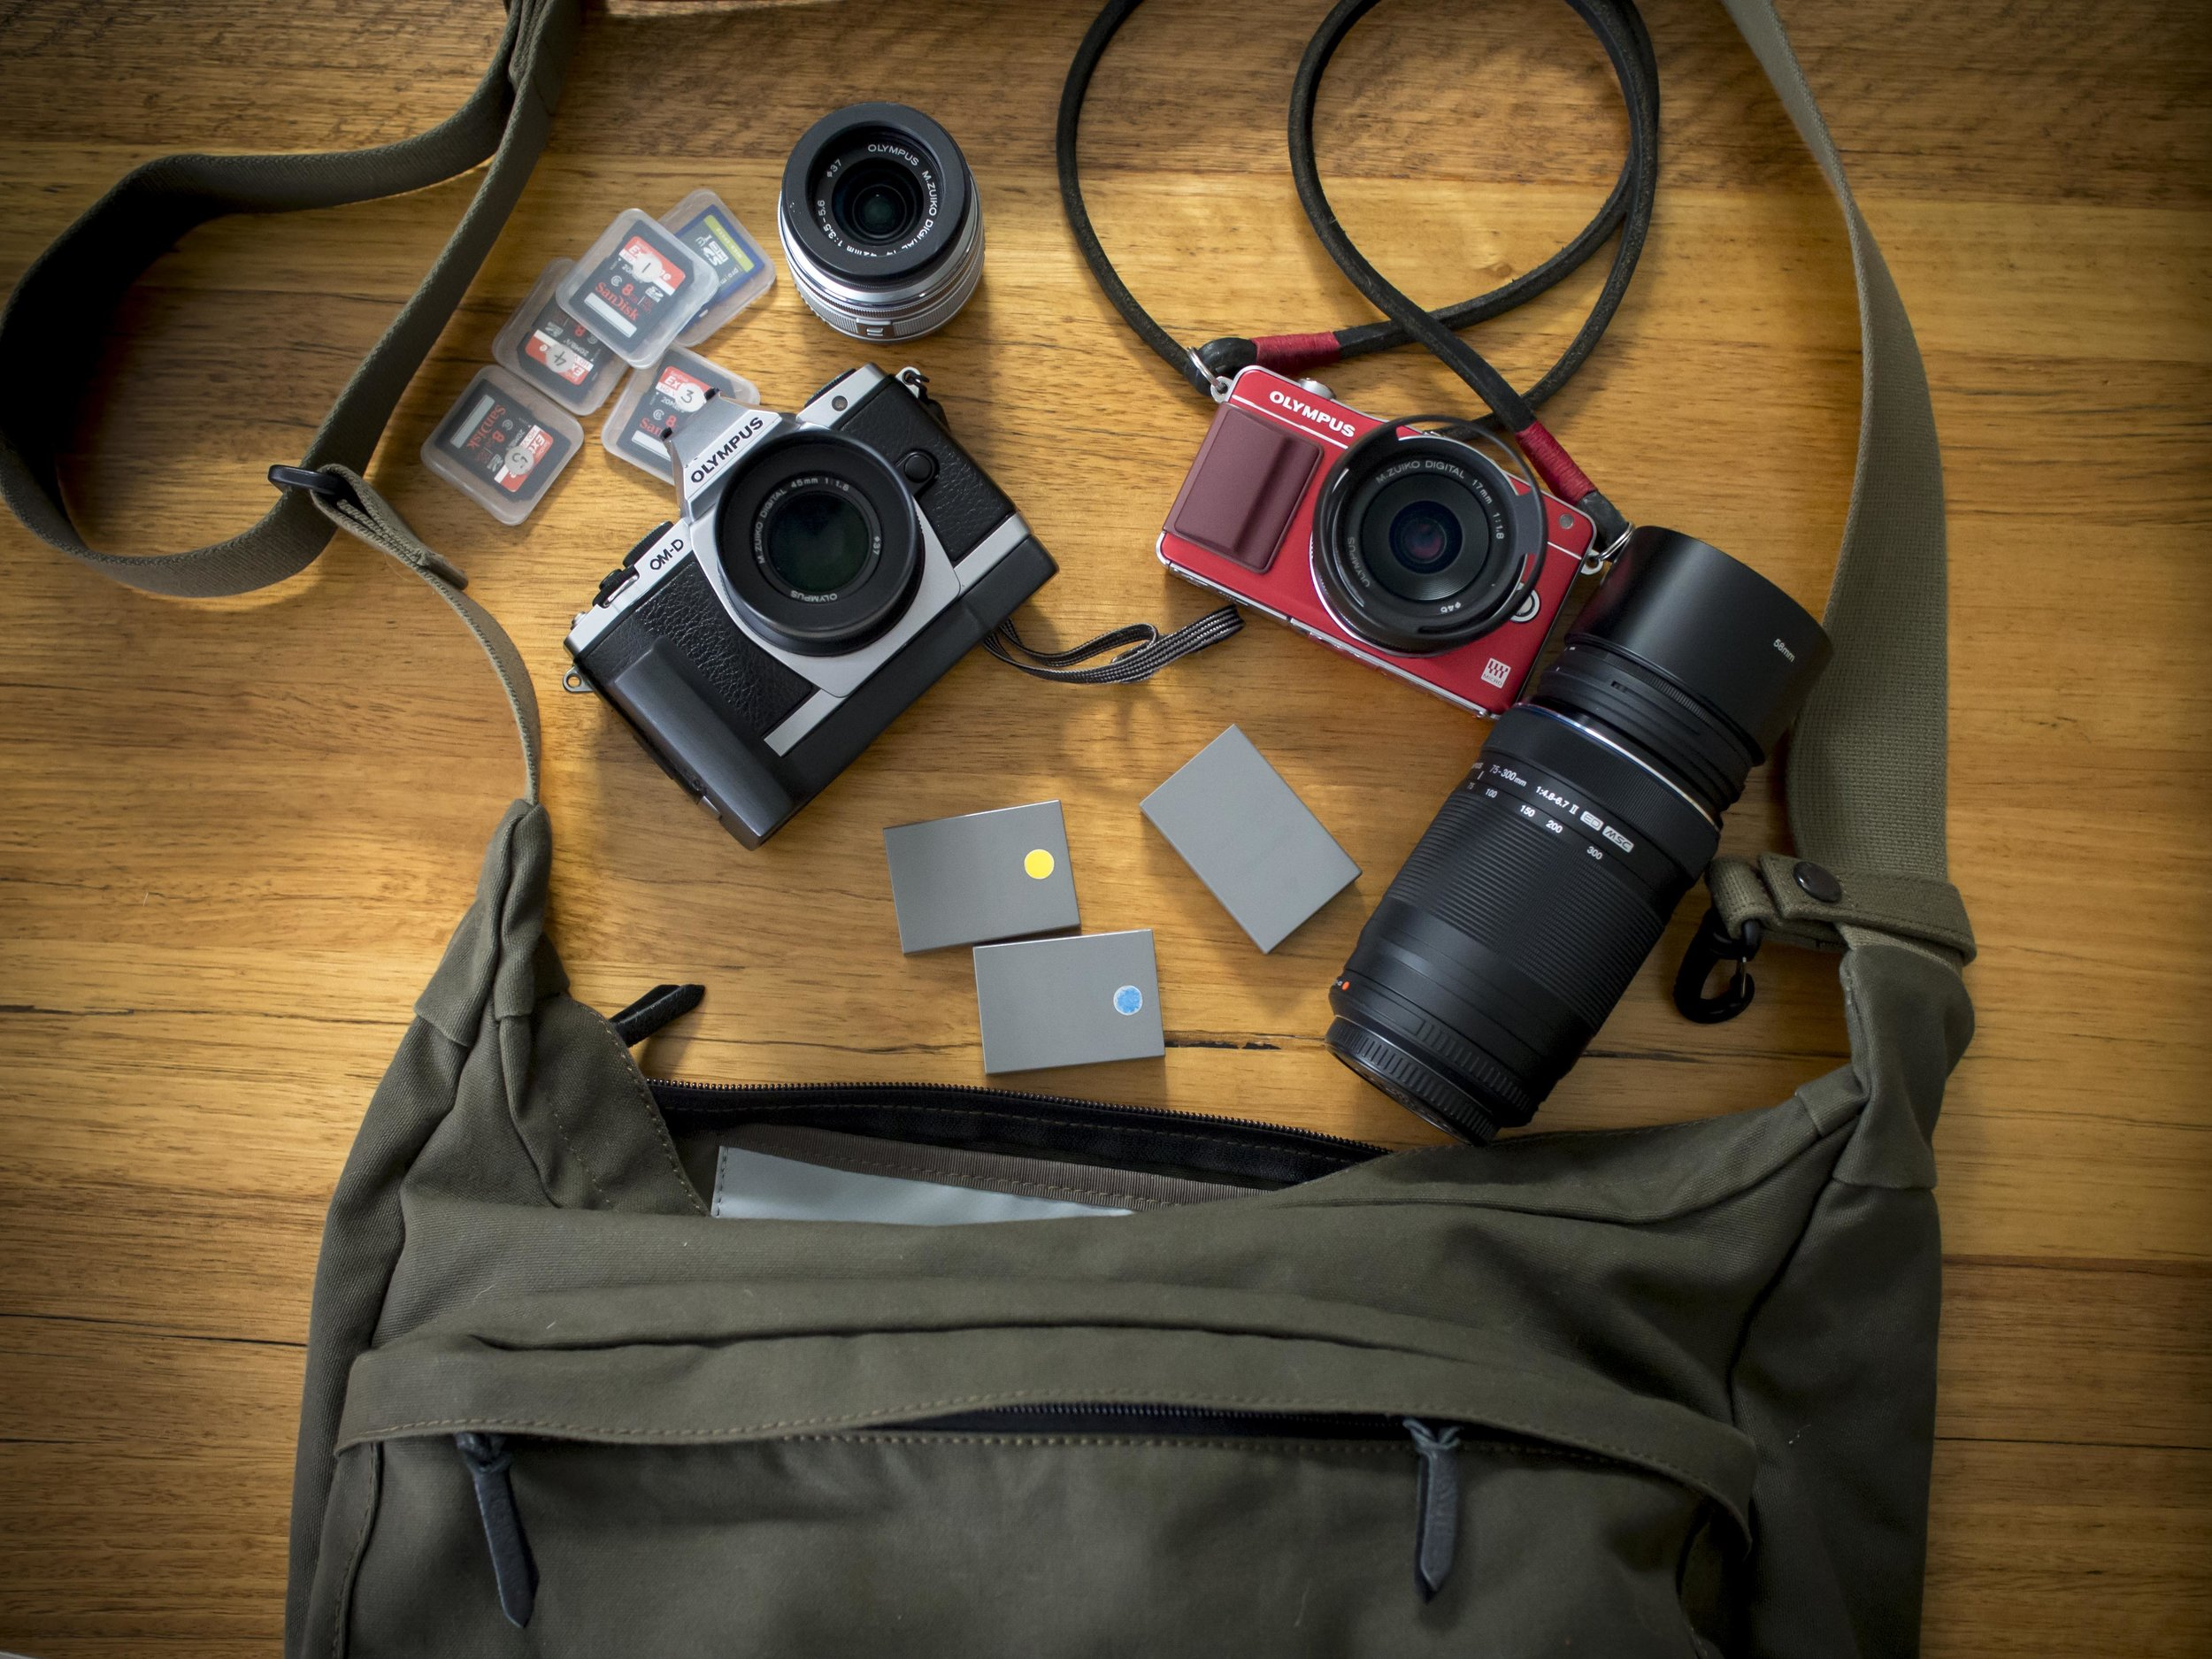 Note the small strap clip that holds the camera strap secure and straight. This bag hold heaps, so it is ideal for shopping day trips.